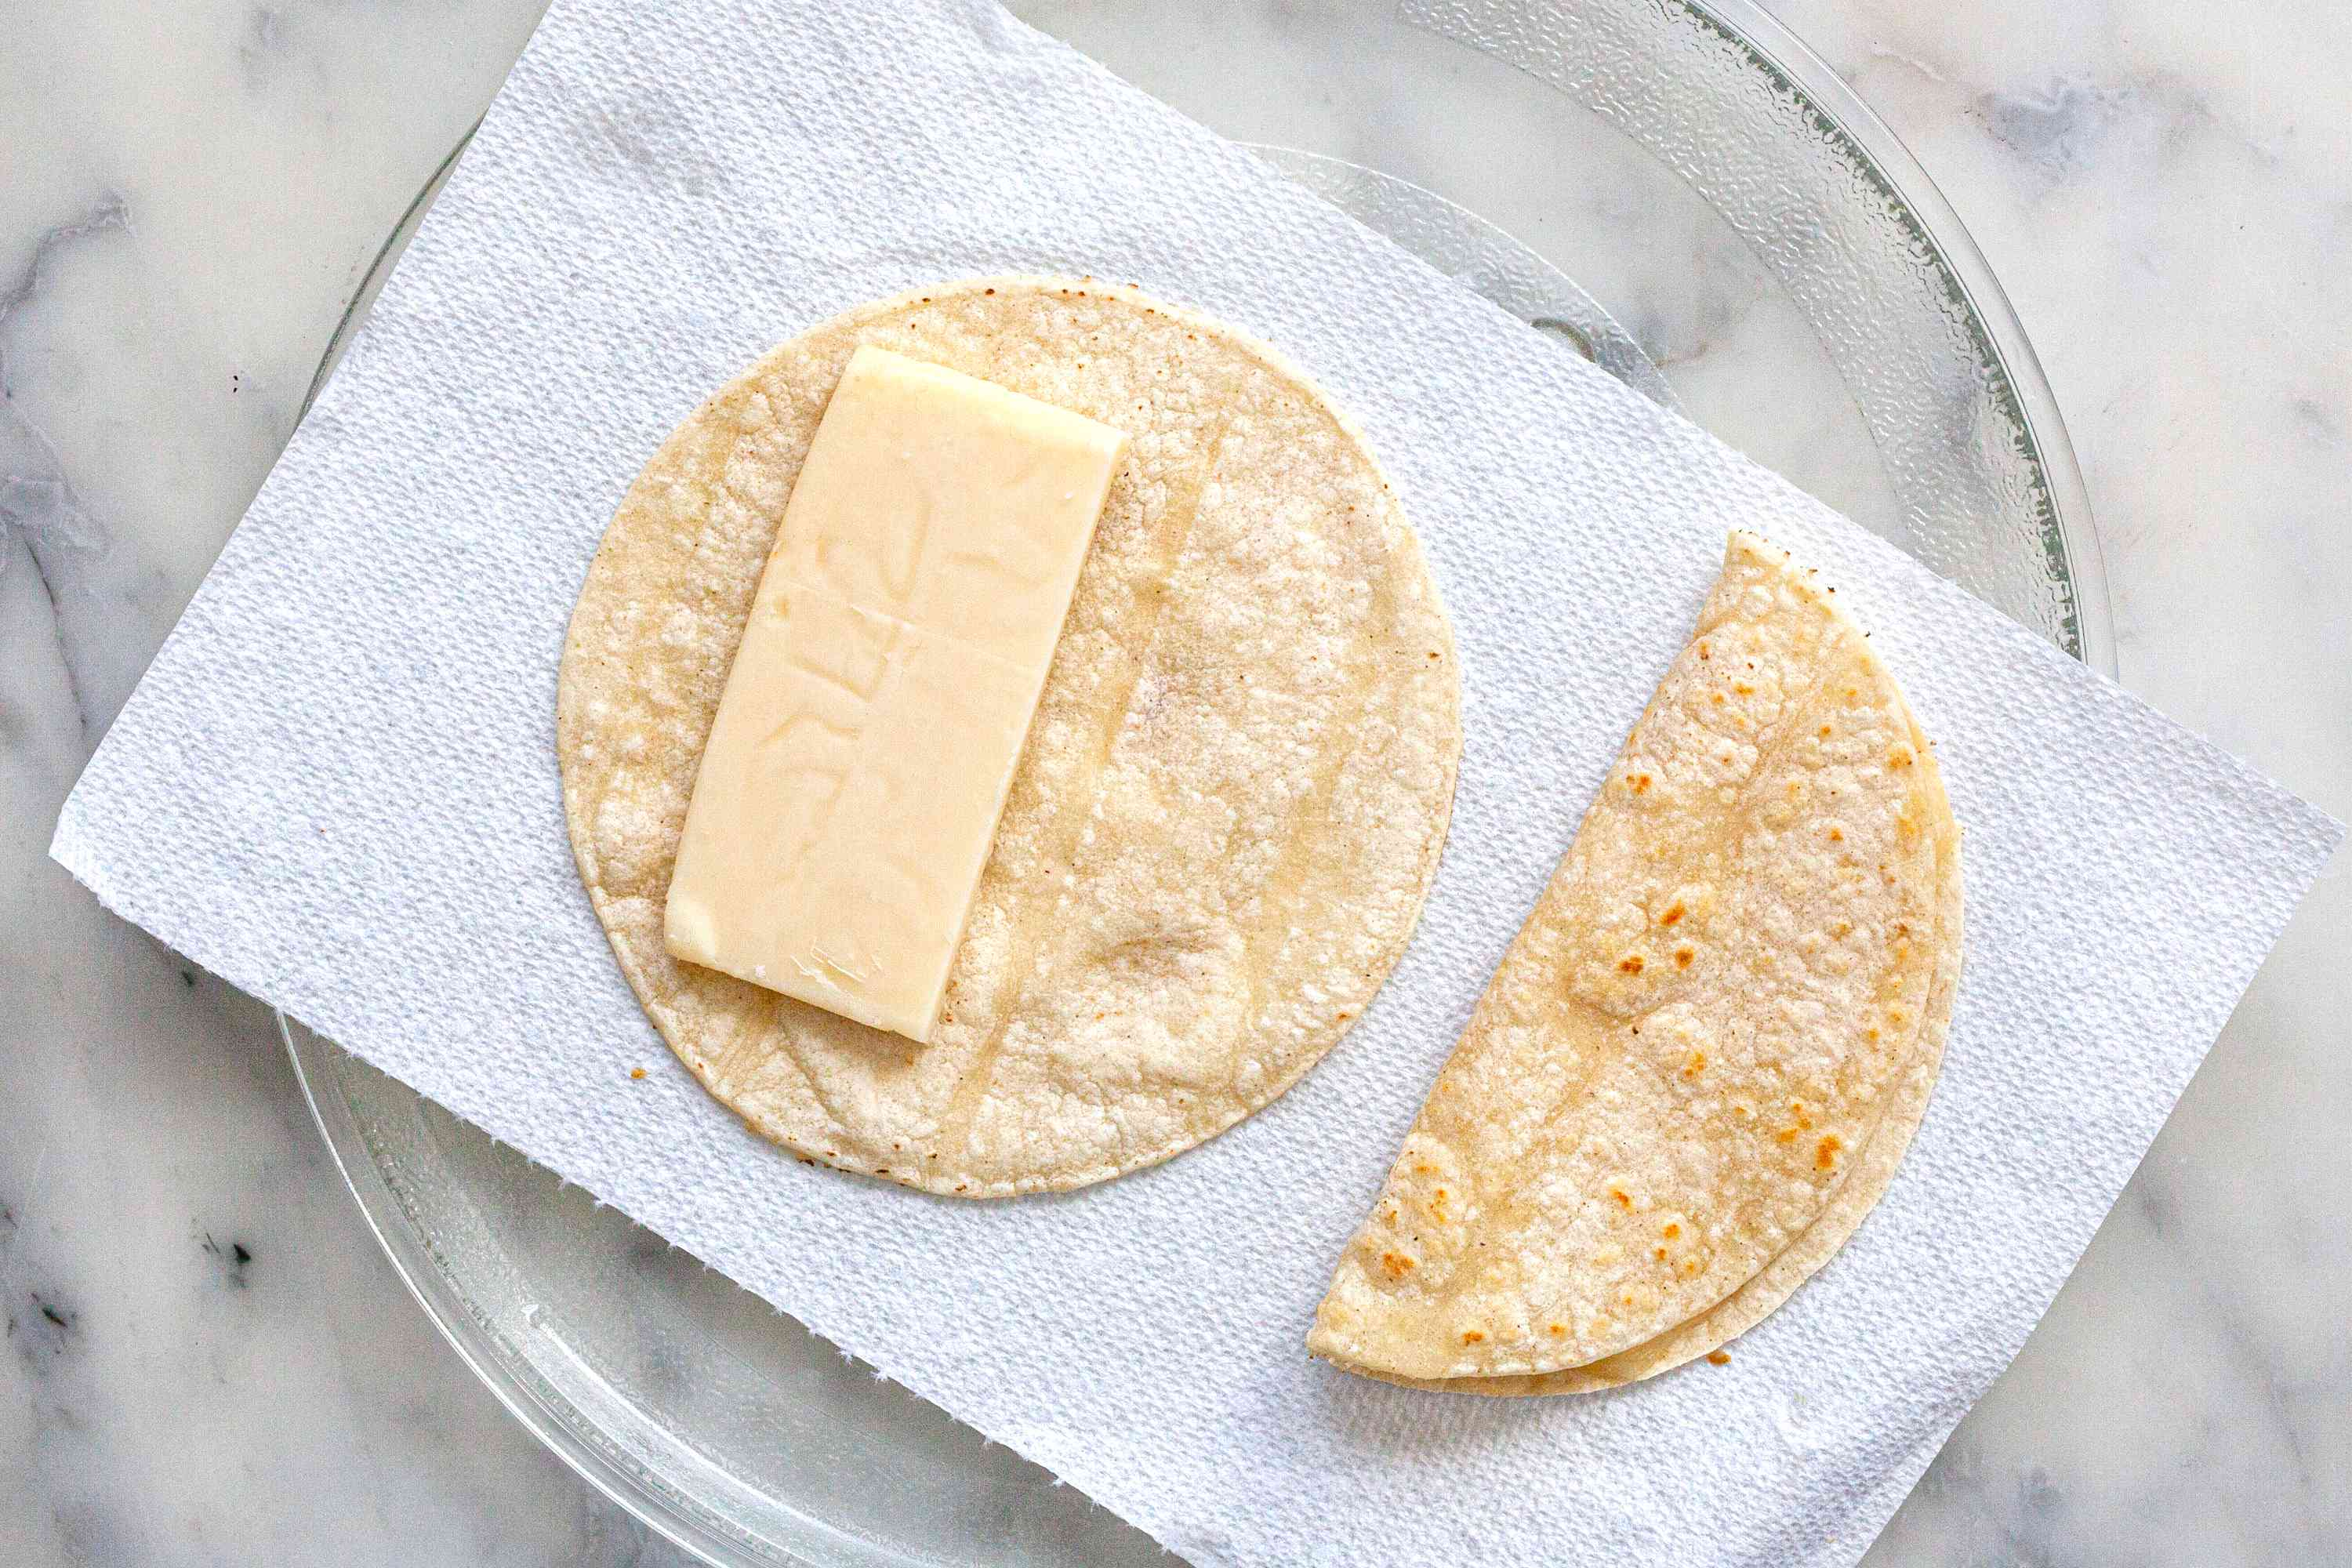 Melting cheese on a microwave platter to make a vegetarian tacos recipe.